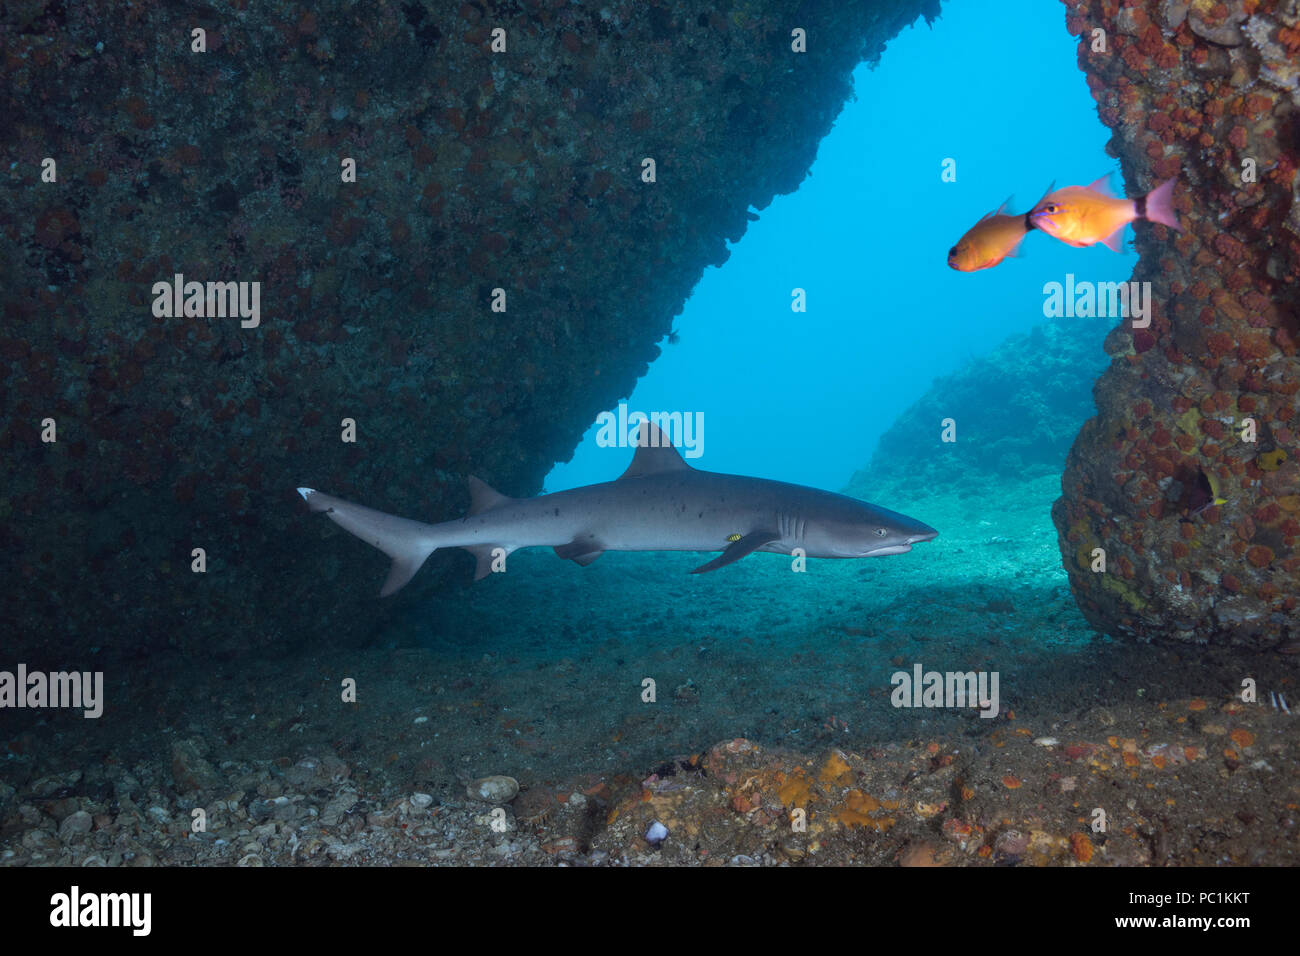 whitetip reef shark, Triaenodon obesus, at mouth of cavern, with small pilot fish next to right pectoral fin, Gato Island, off Malapascua, Cebu, Phili - Stock Image